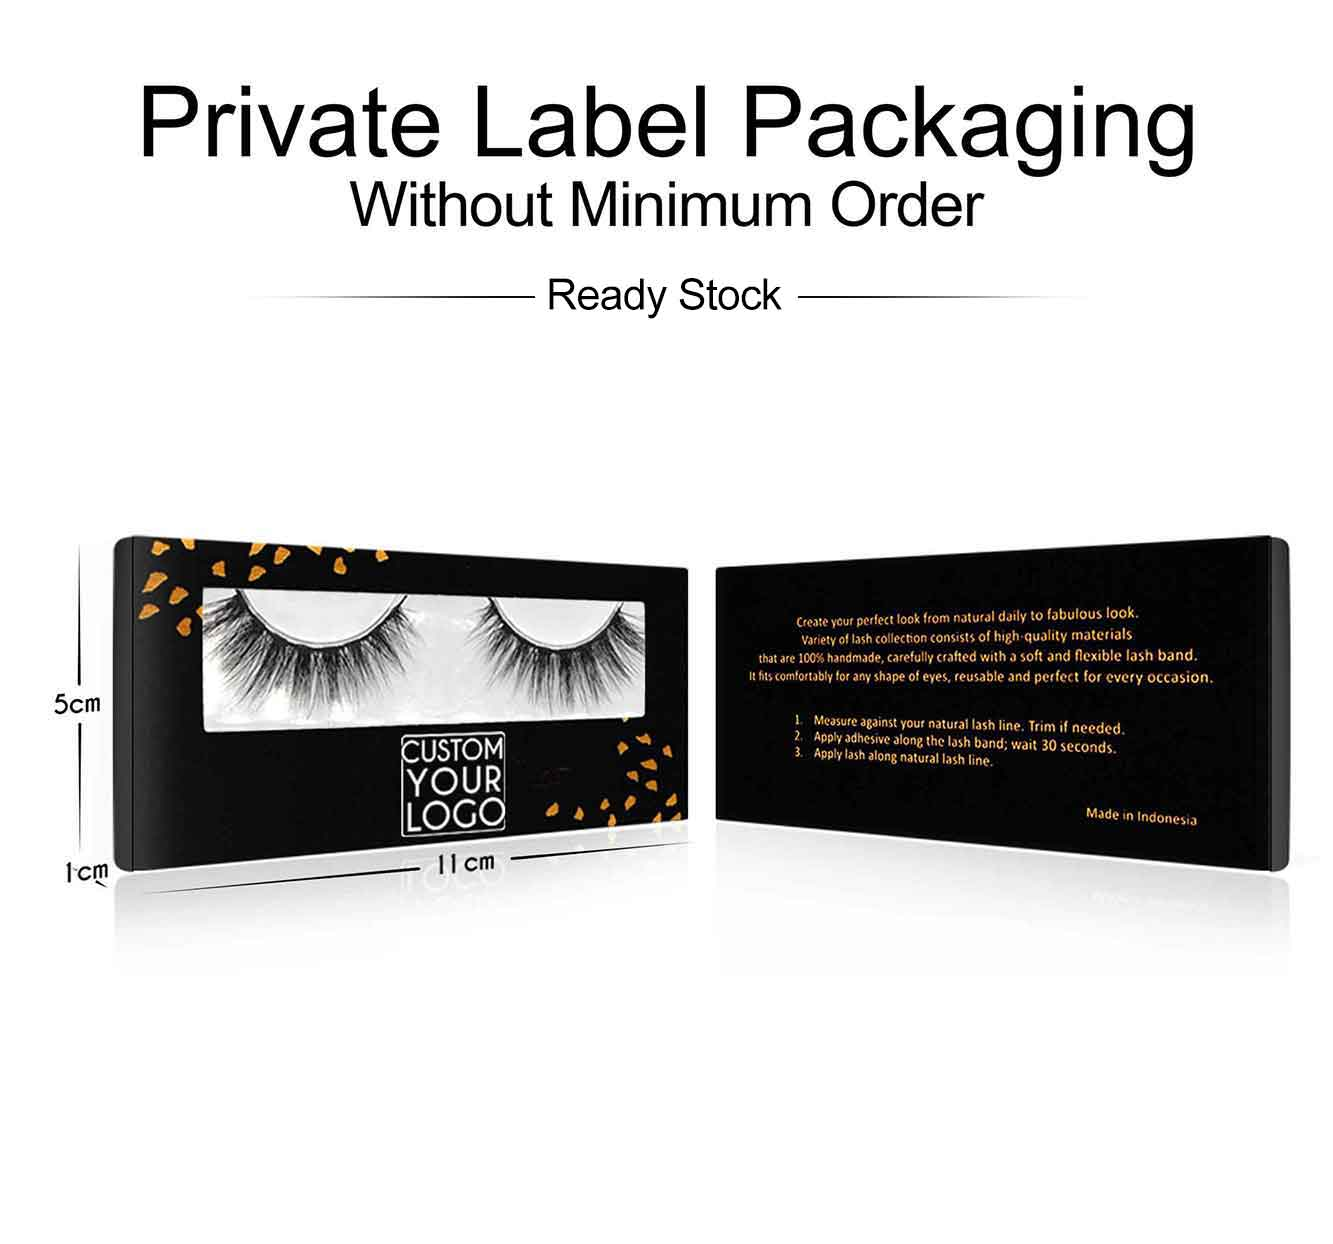 Private-Label-Packaging-ready-stock